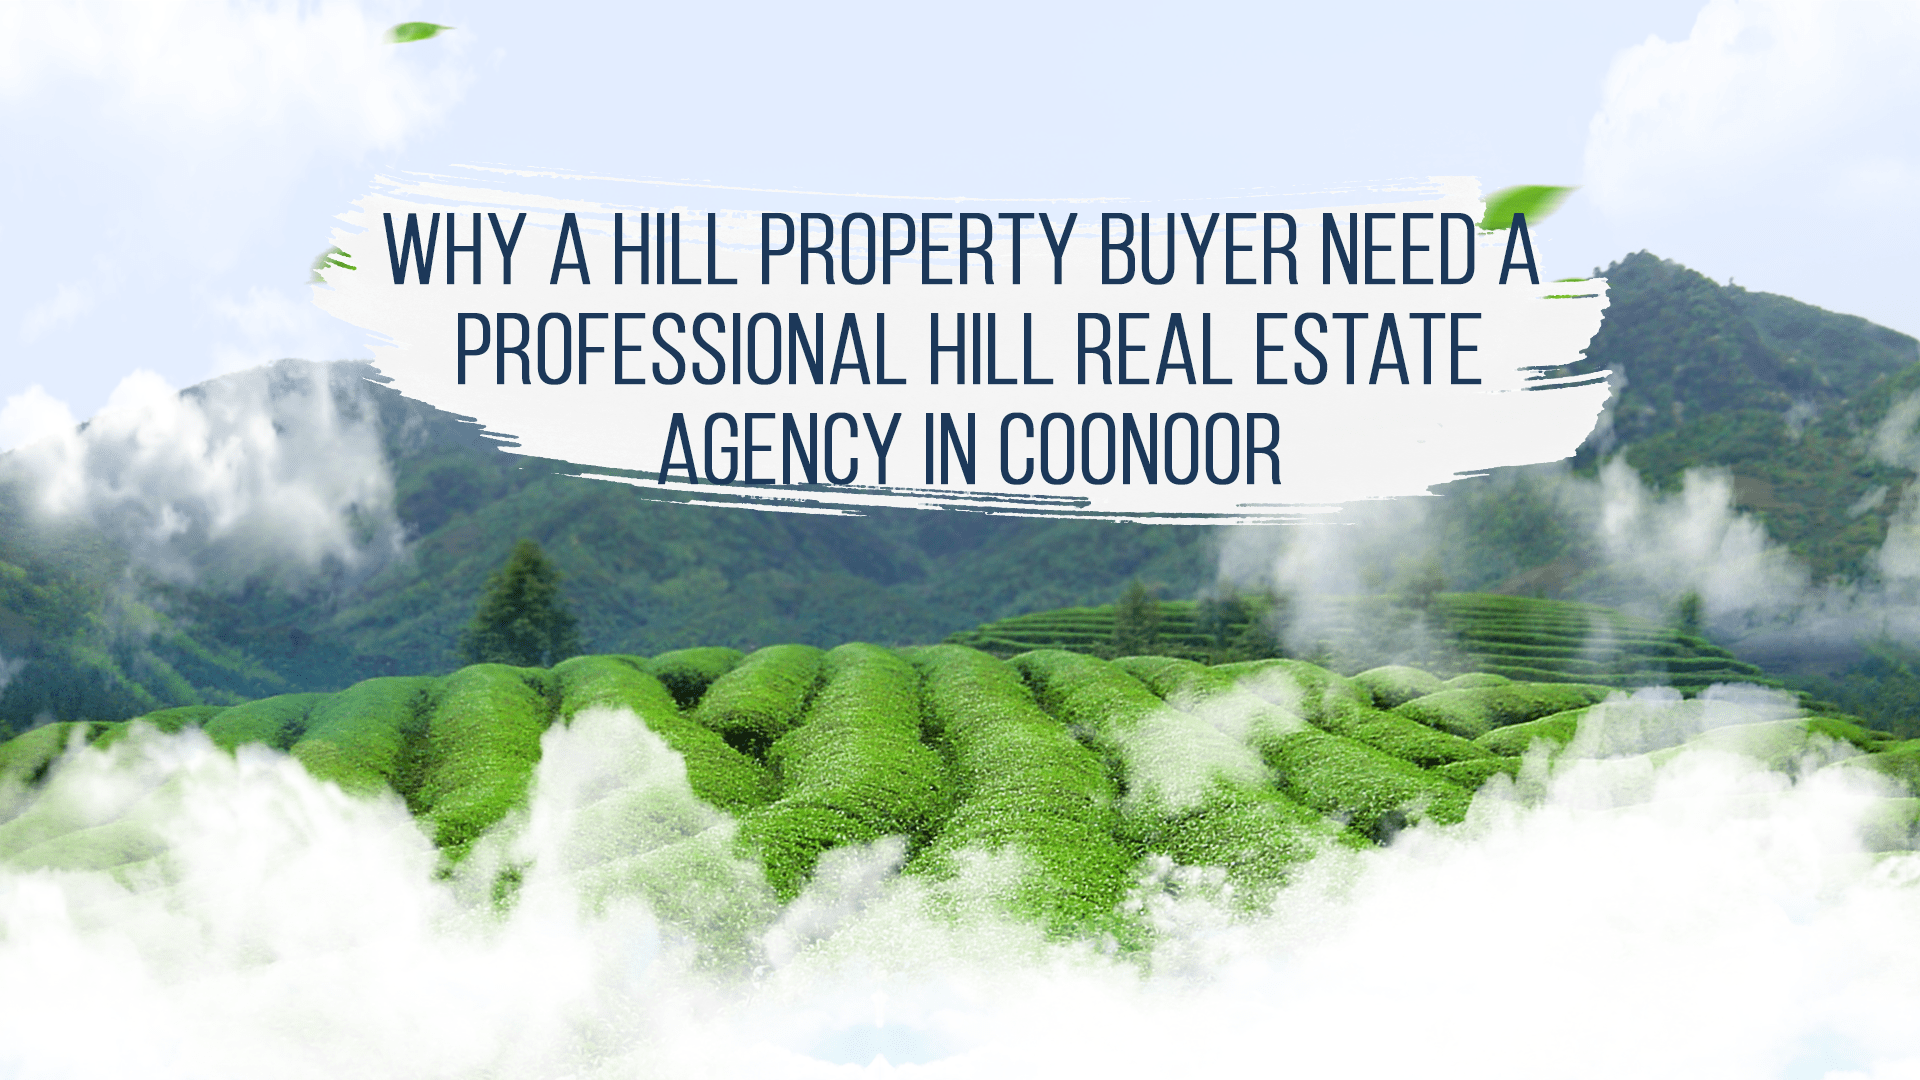 Why a Property Buyer need A  Professional Hill Real Estate Agency in Coonoor?